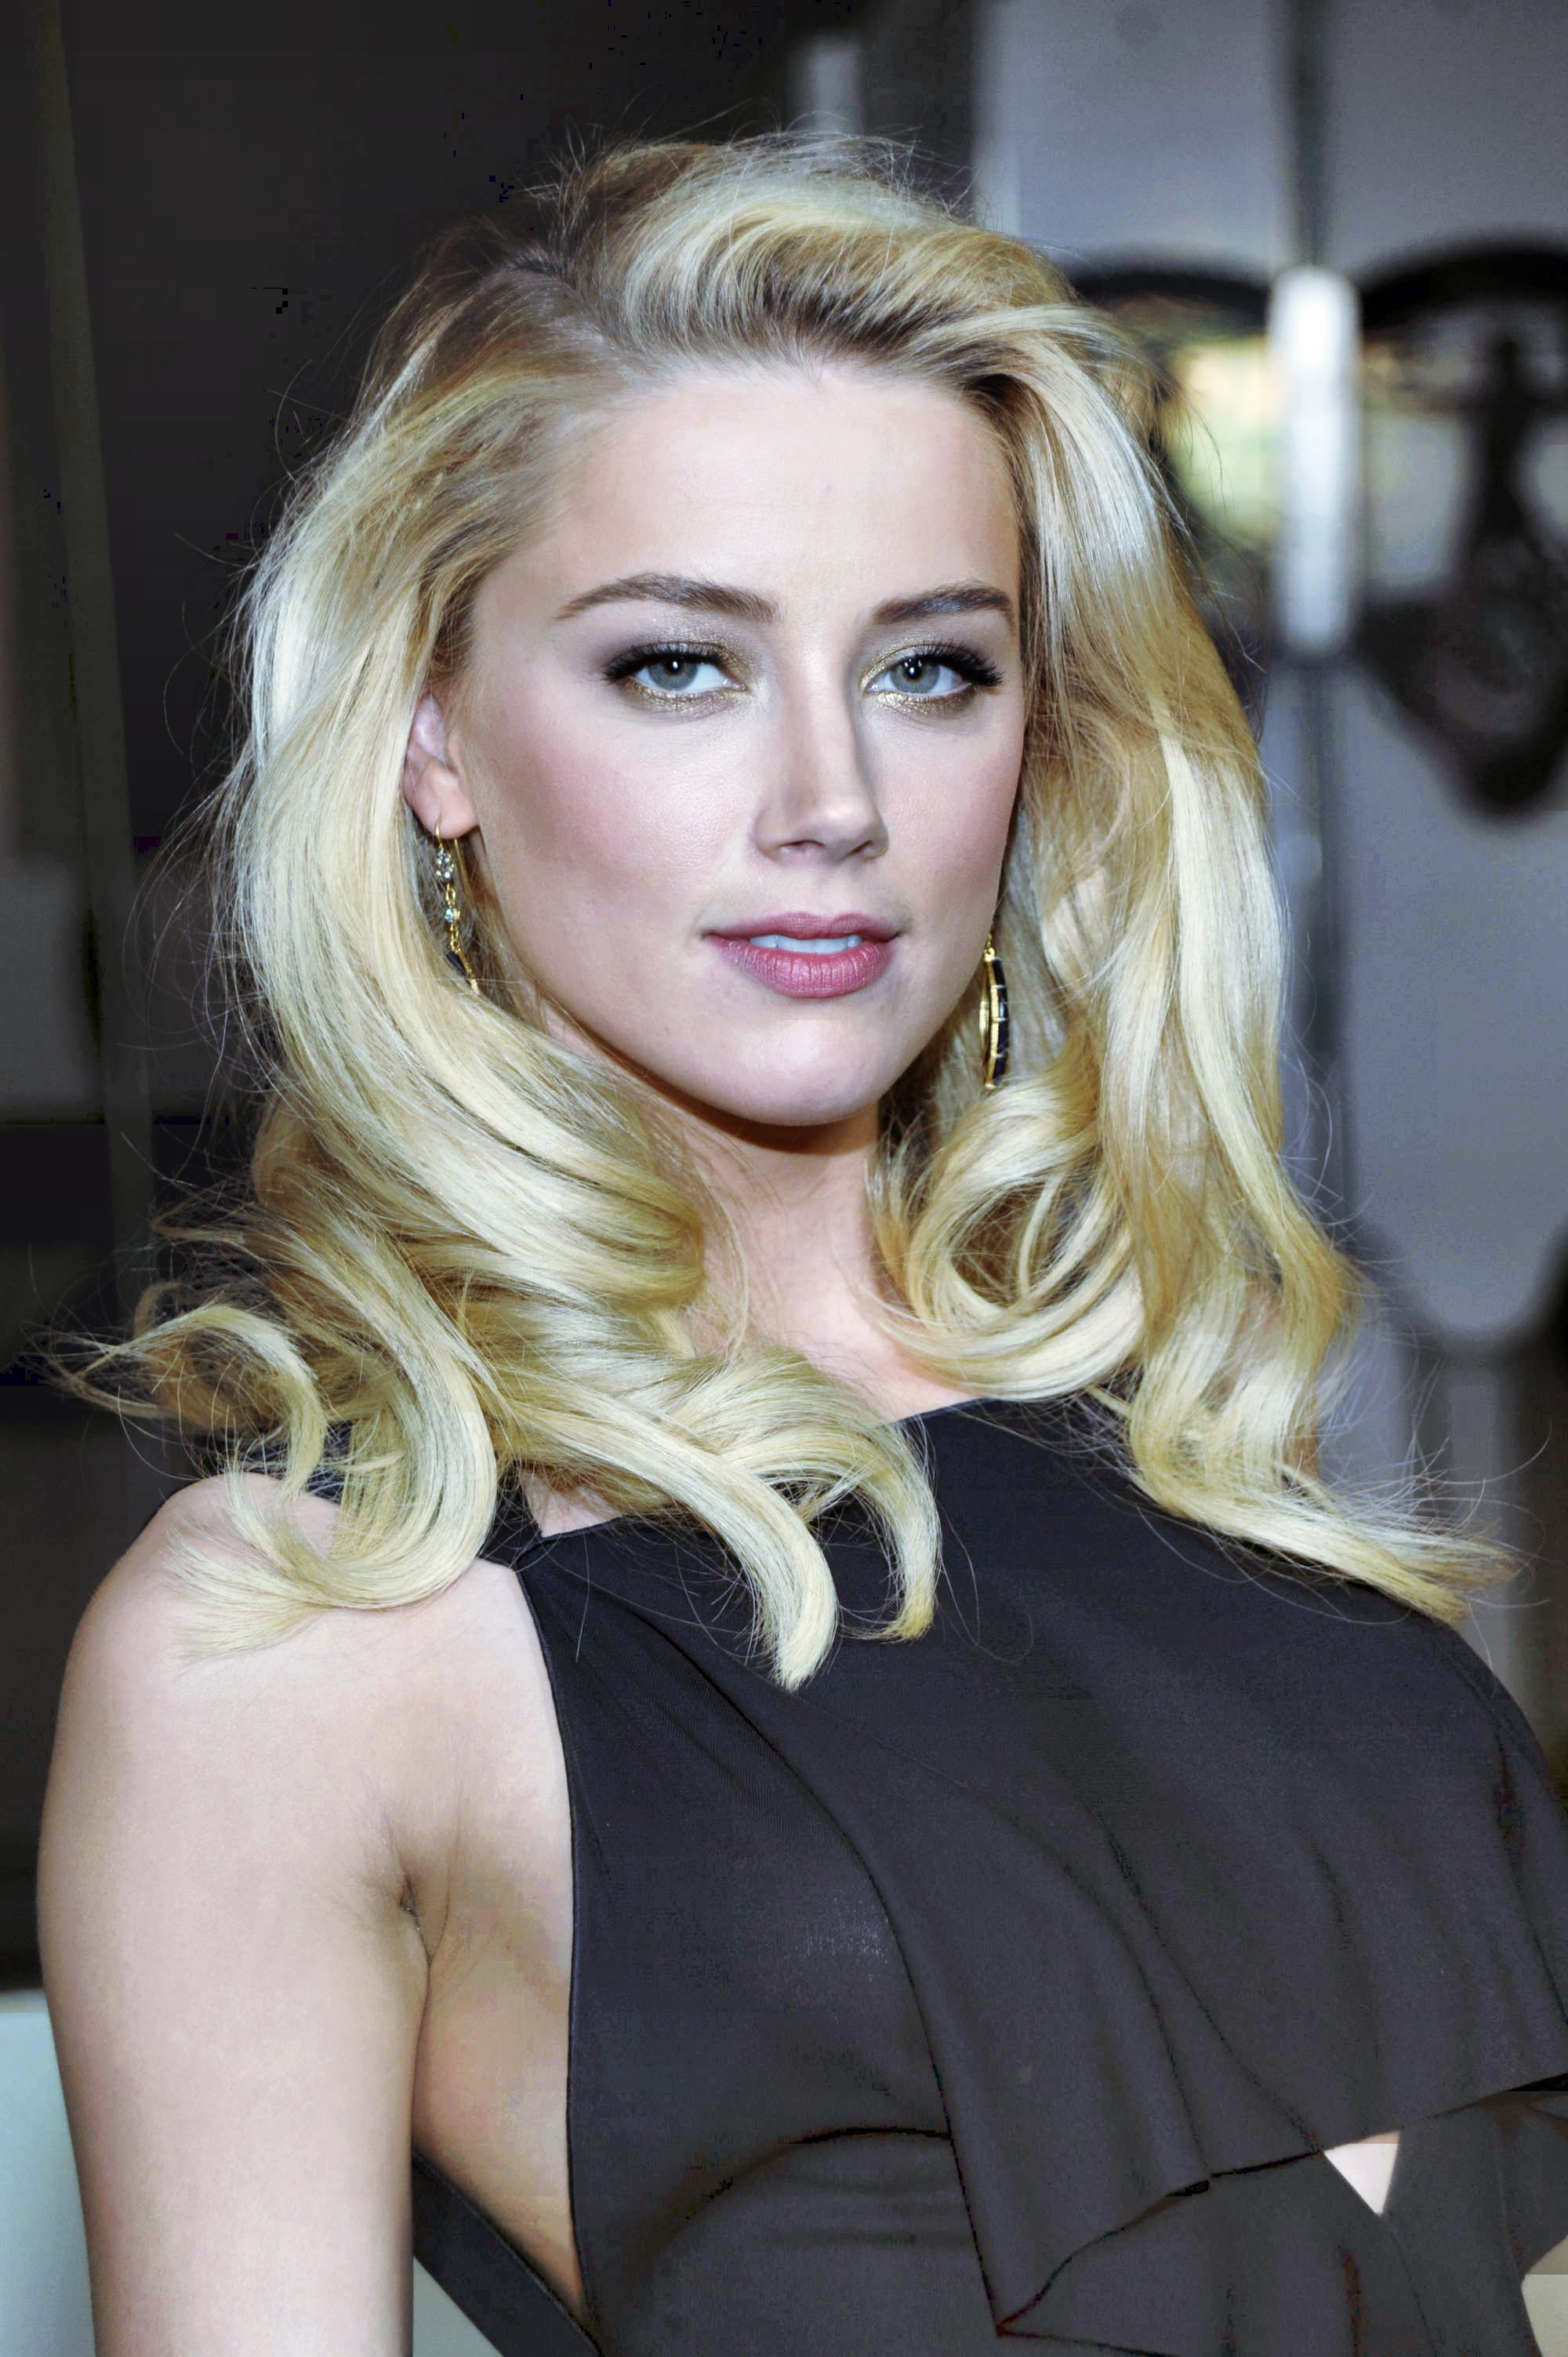 Amber Heard | Known pe... Amber Heard